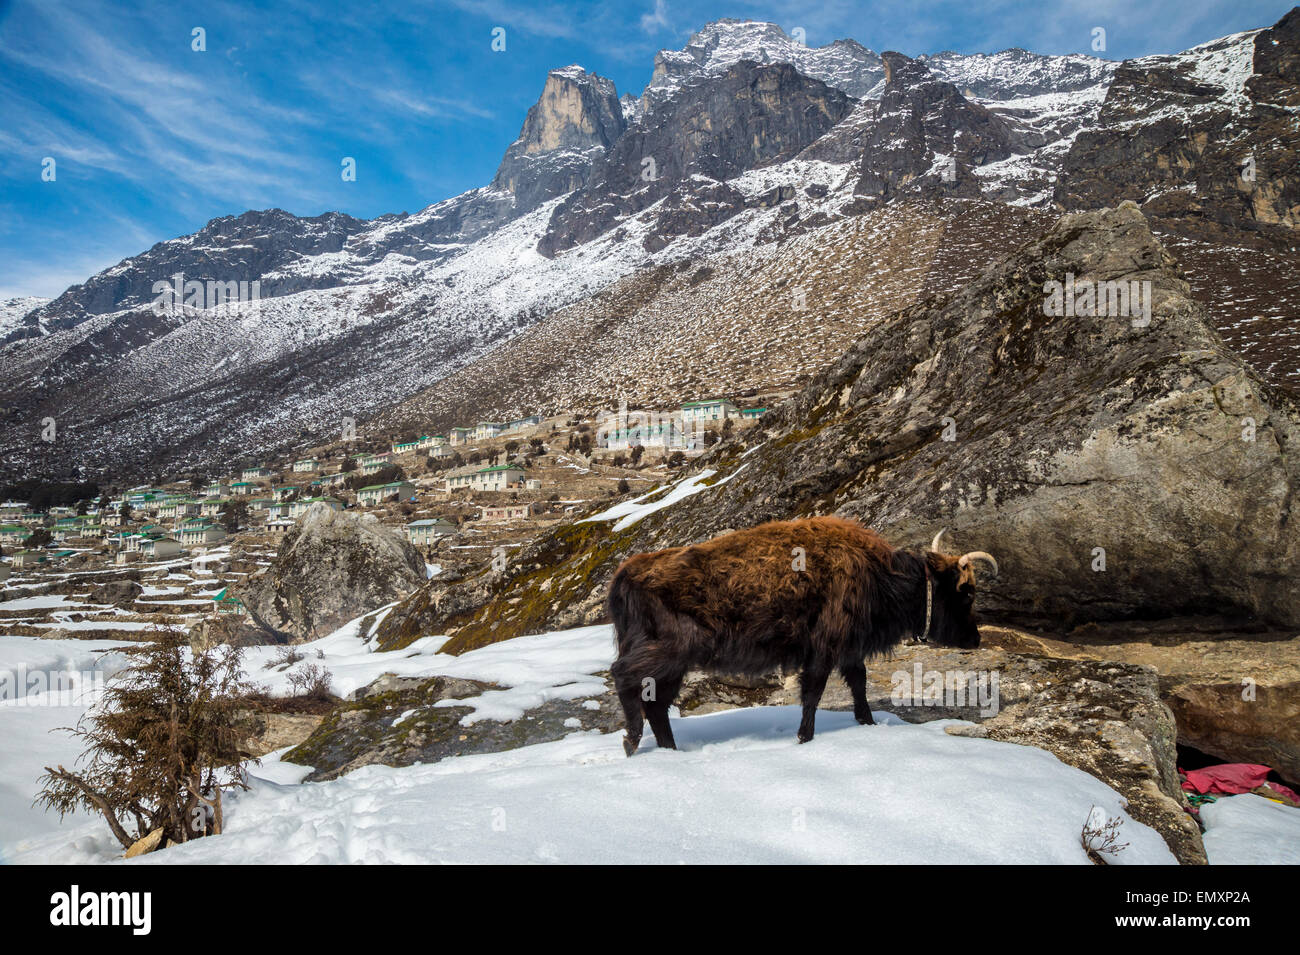 View of mount Khumbila, Khumjung village with a Dzo in the foreground - Stock Image